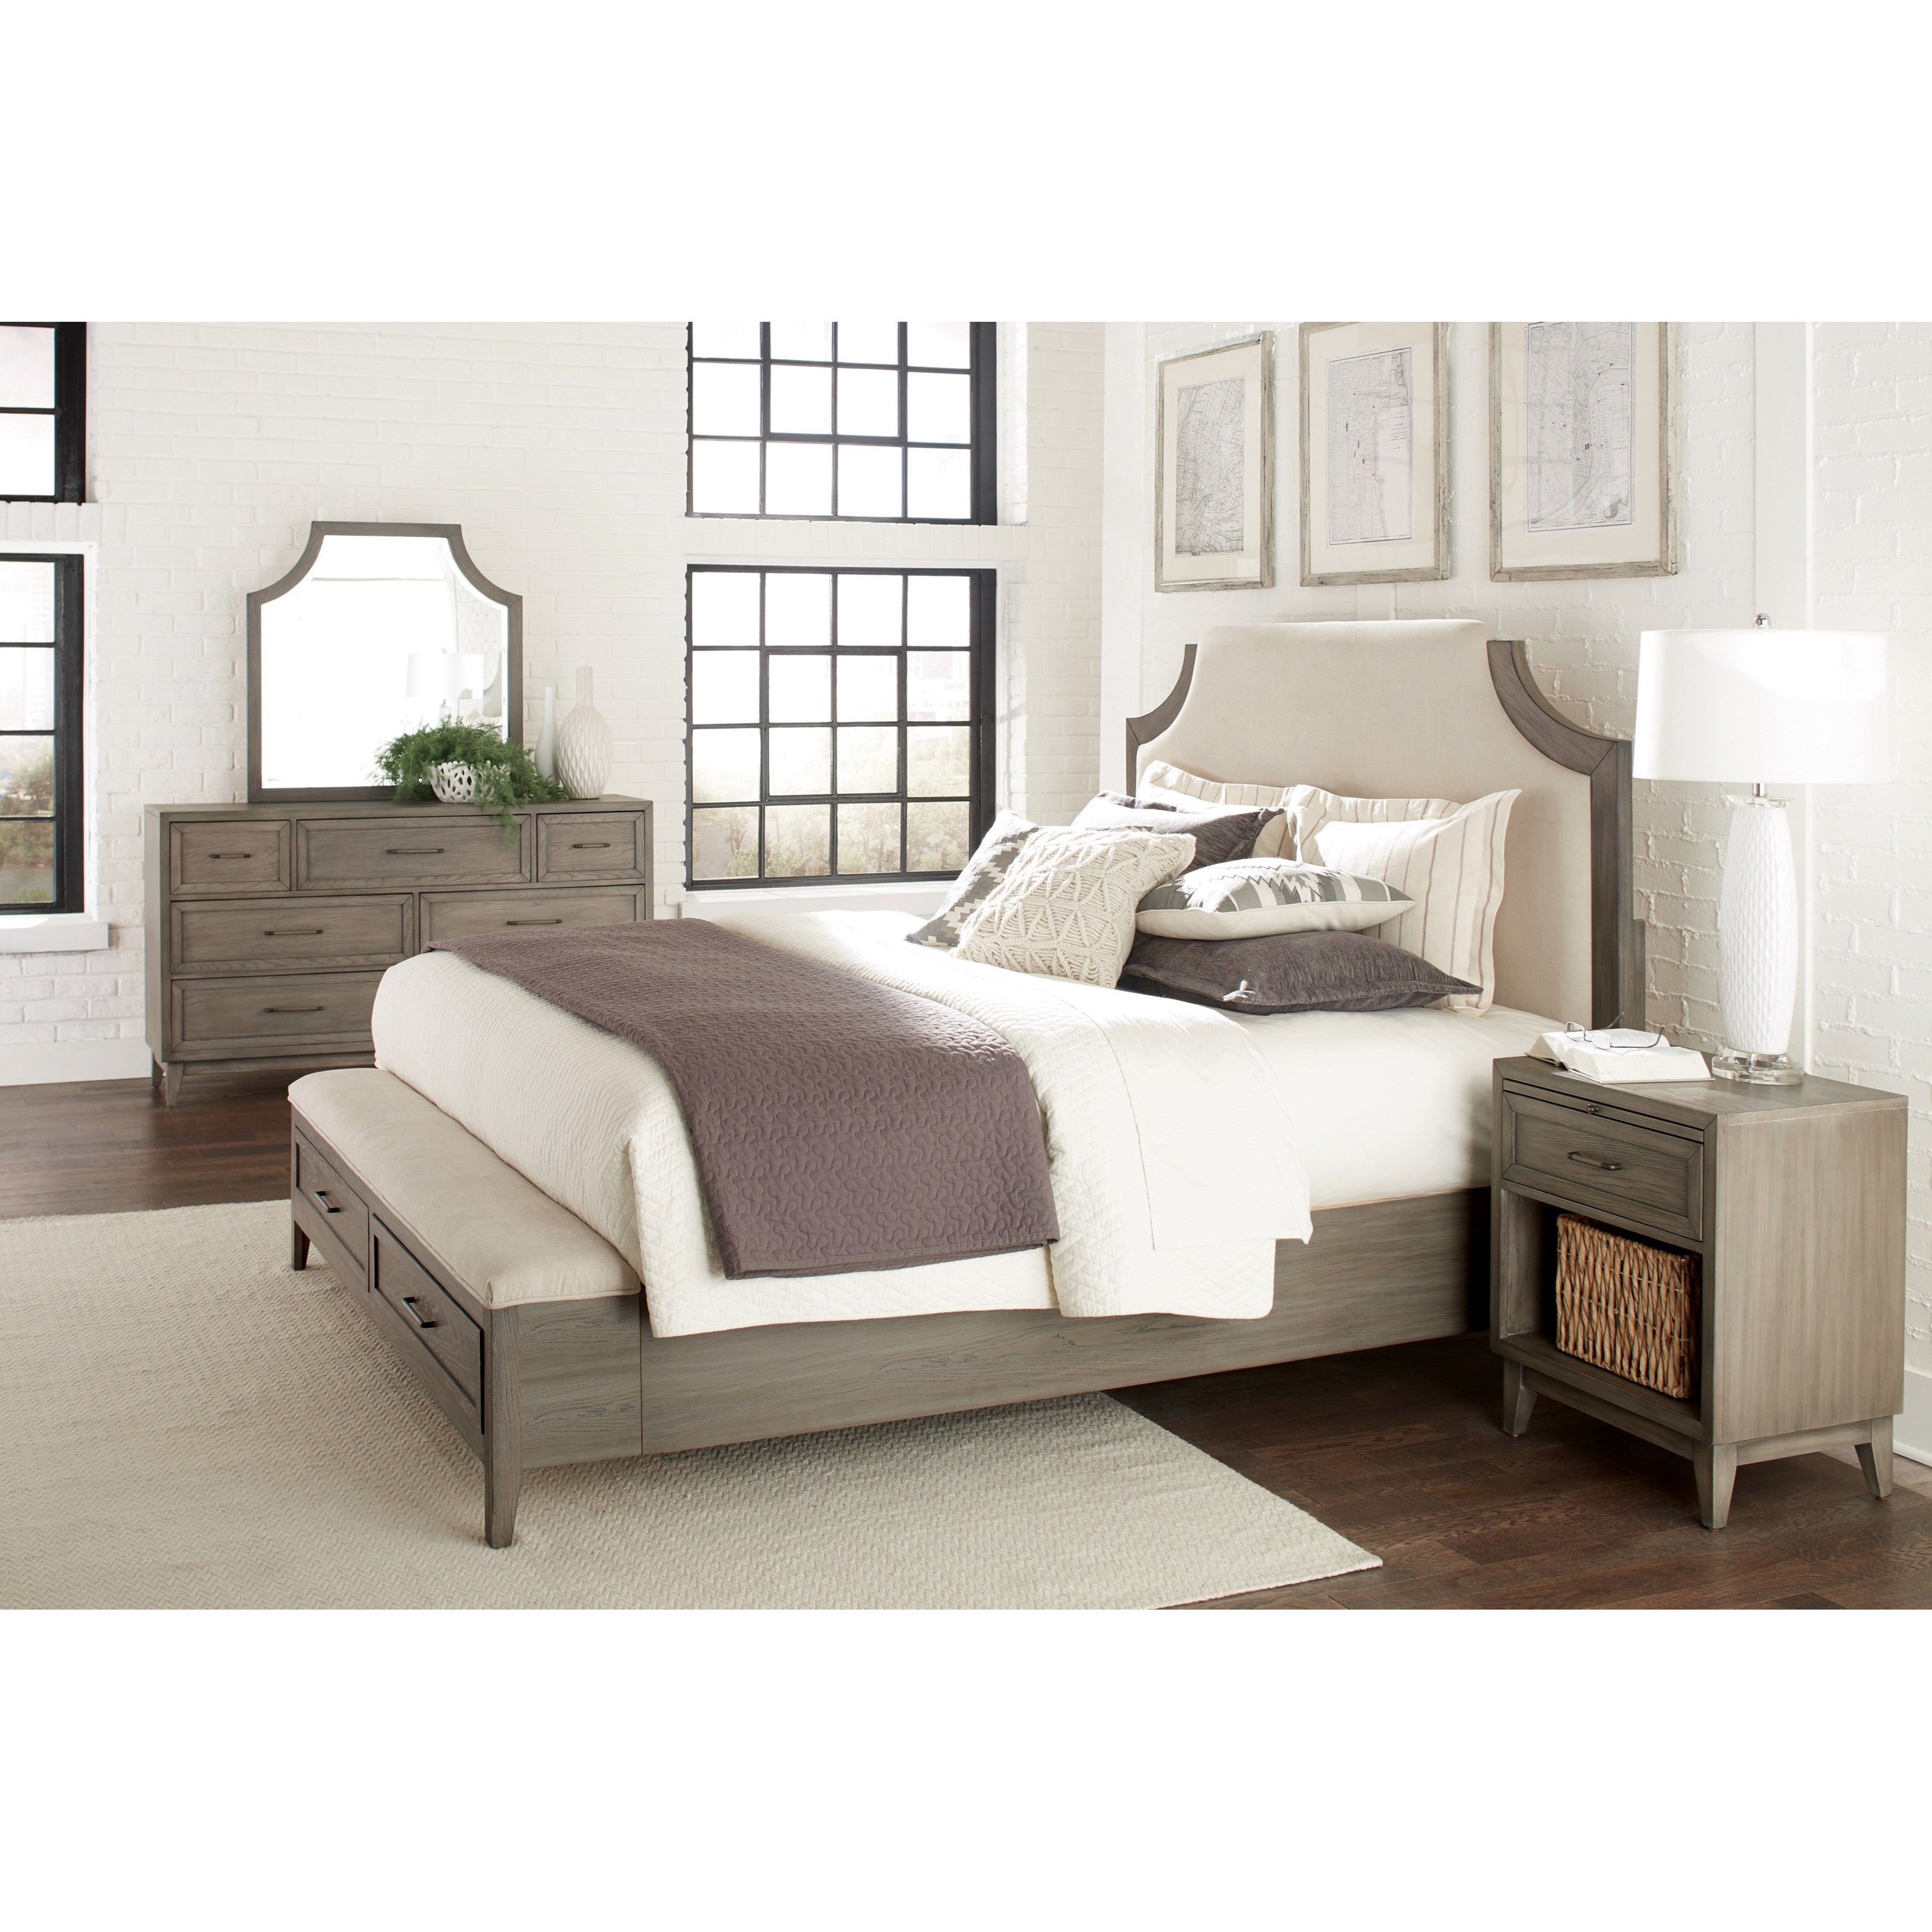 Riverside Furniture Vogue Queen Upholstered Bed With